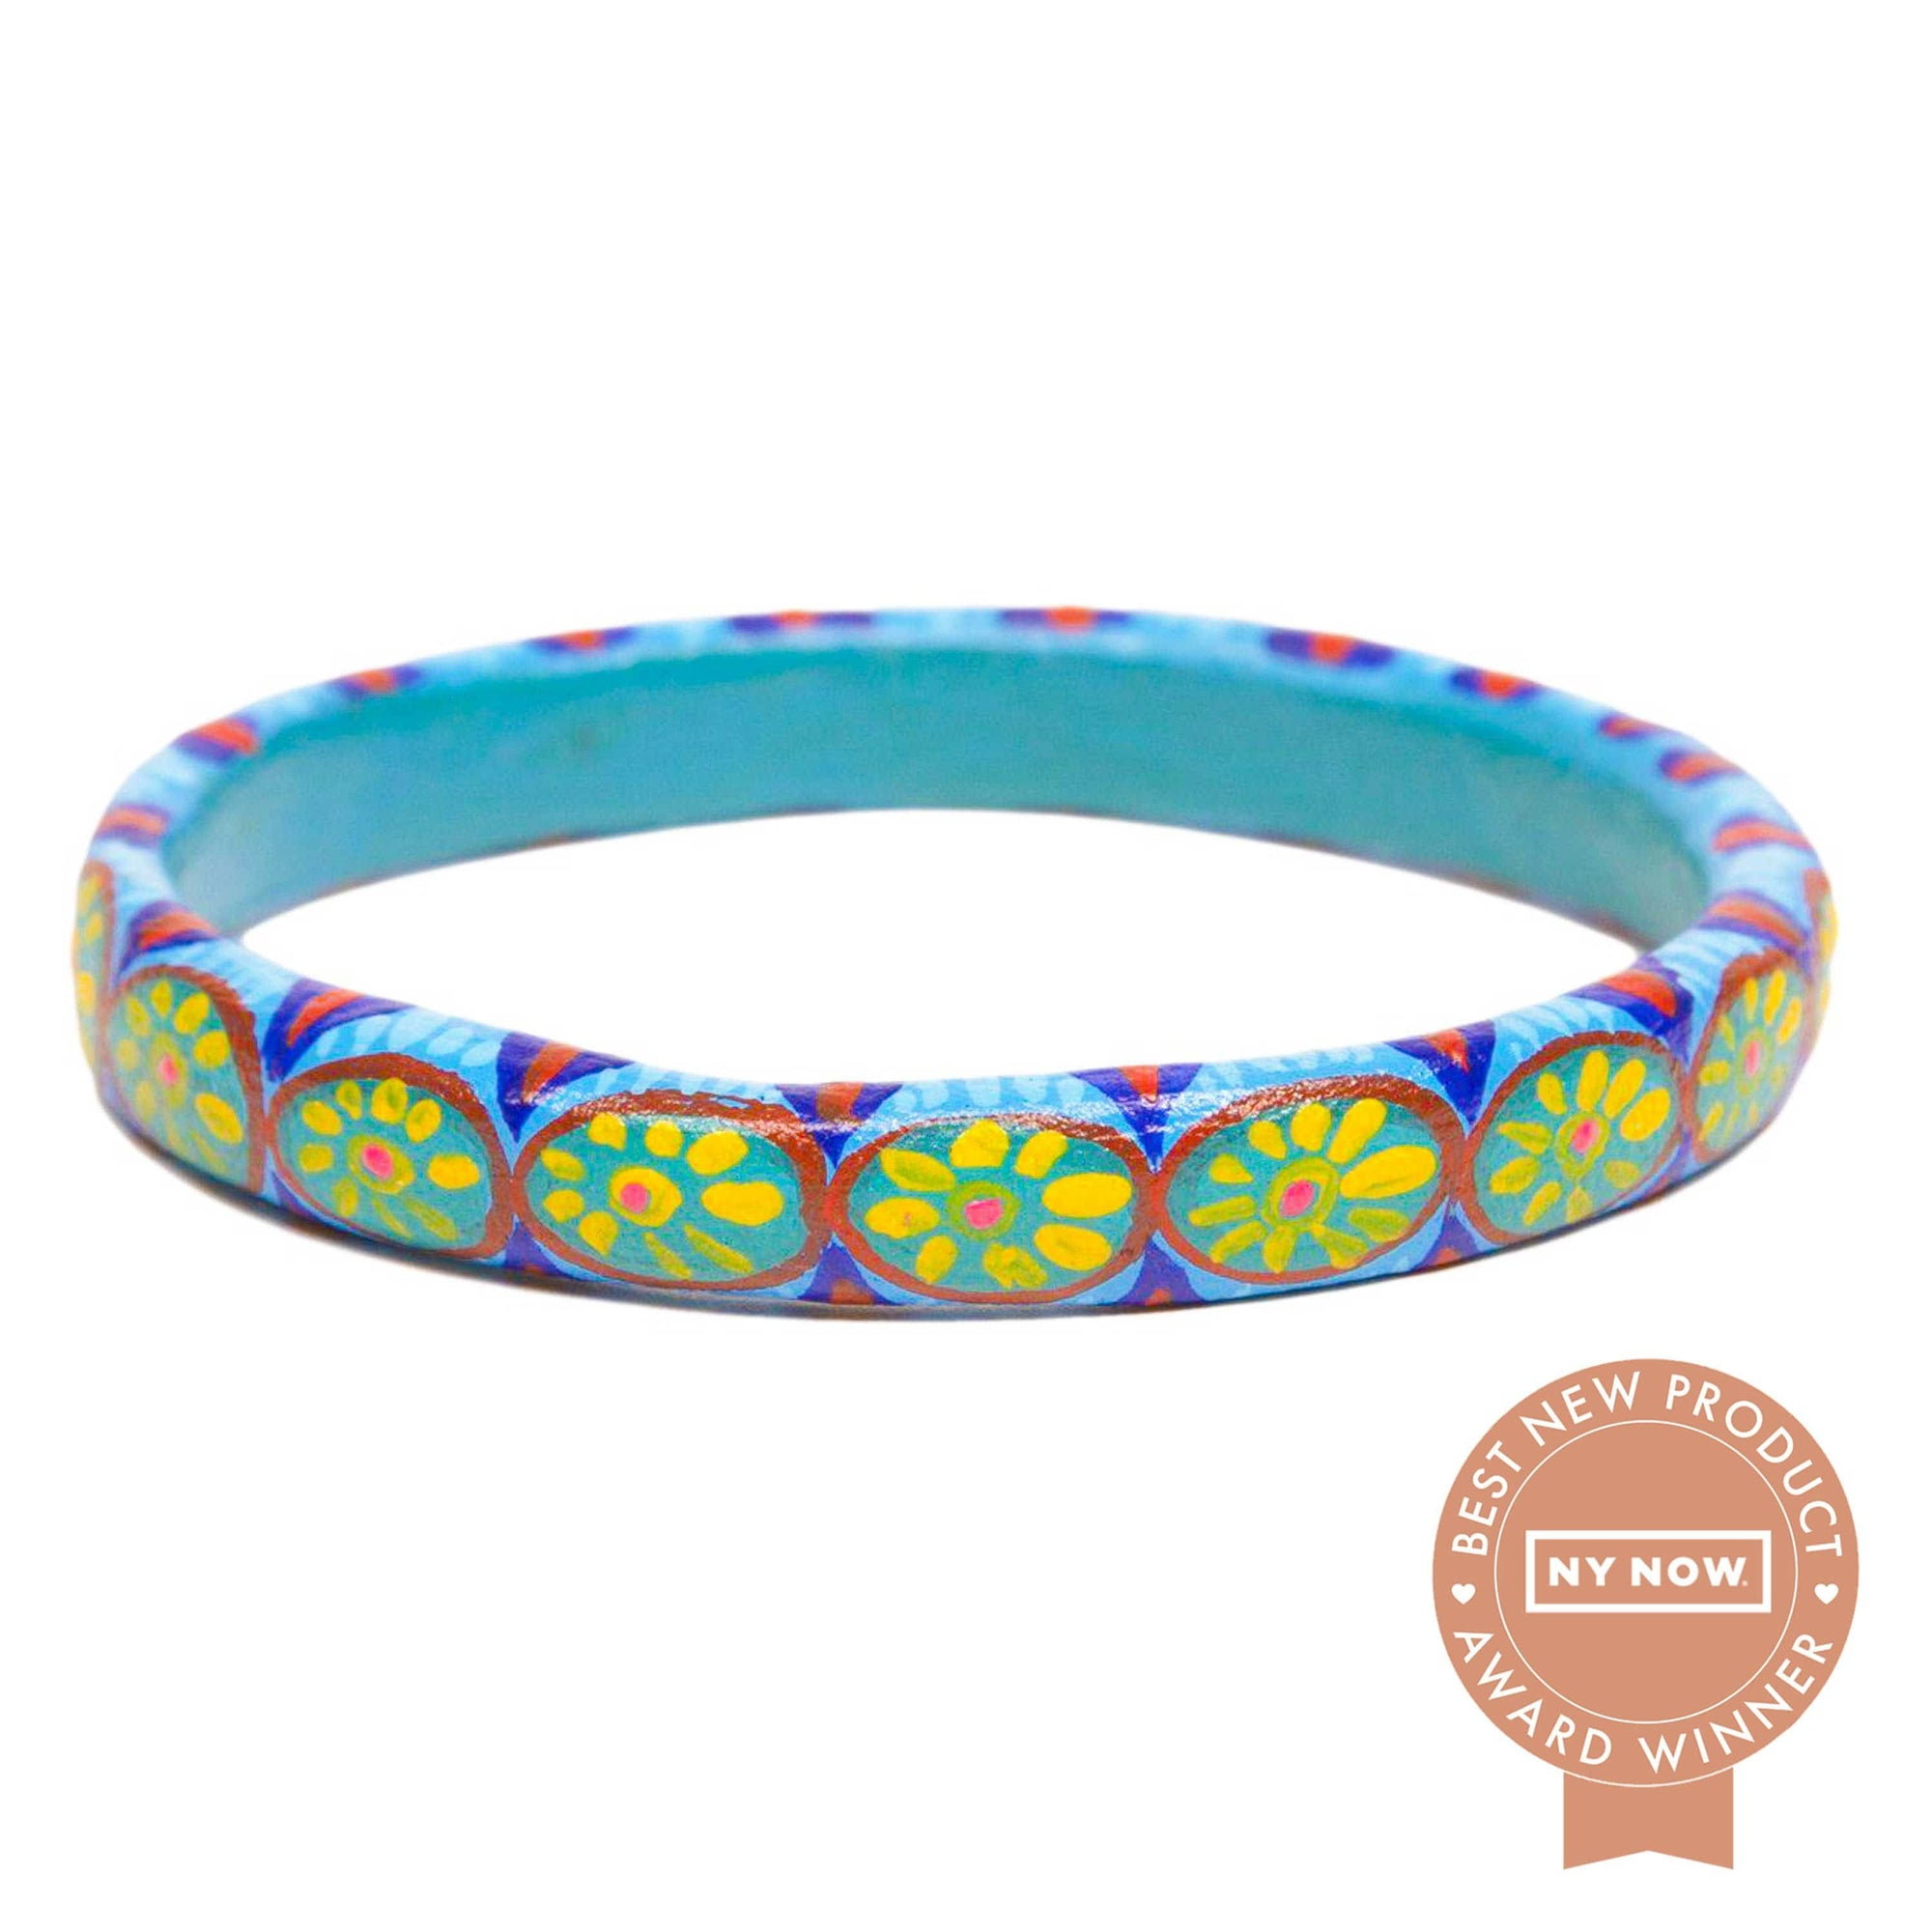 Corazon Wooden Bangle - Turquoise